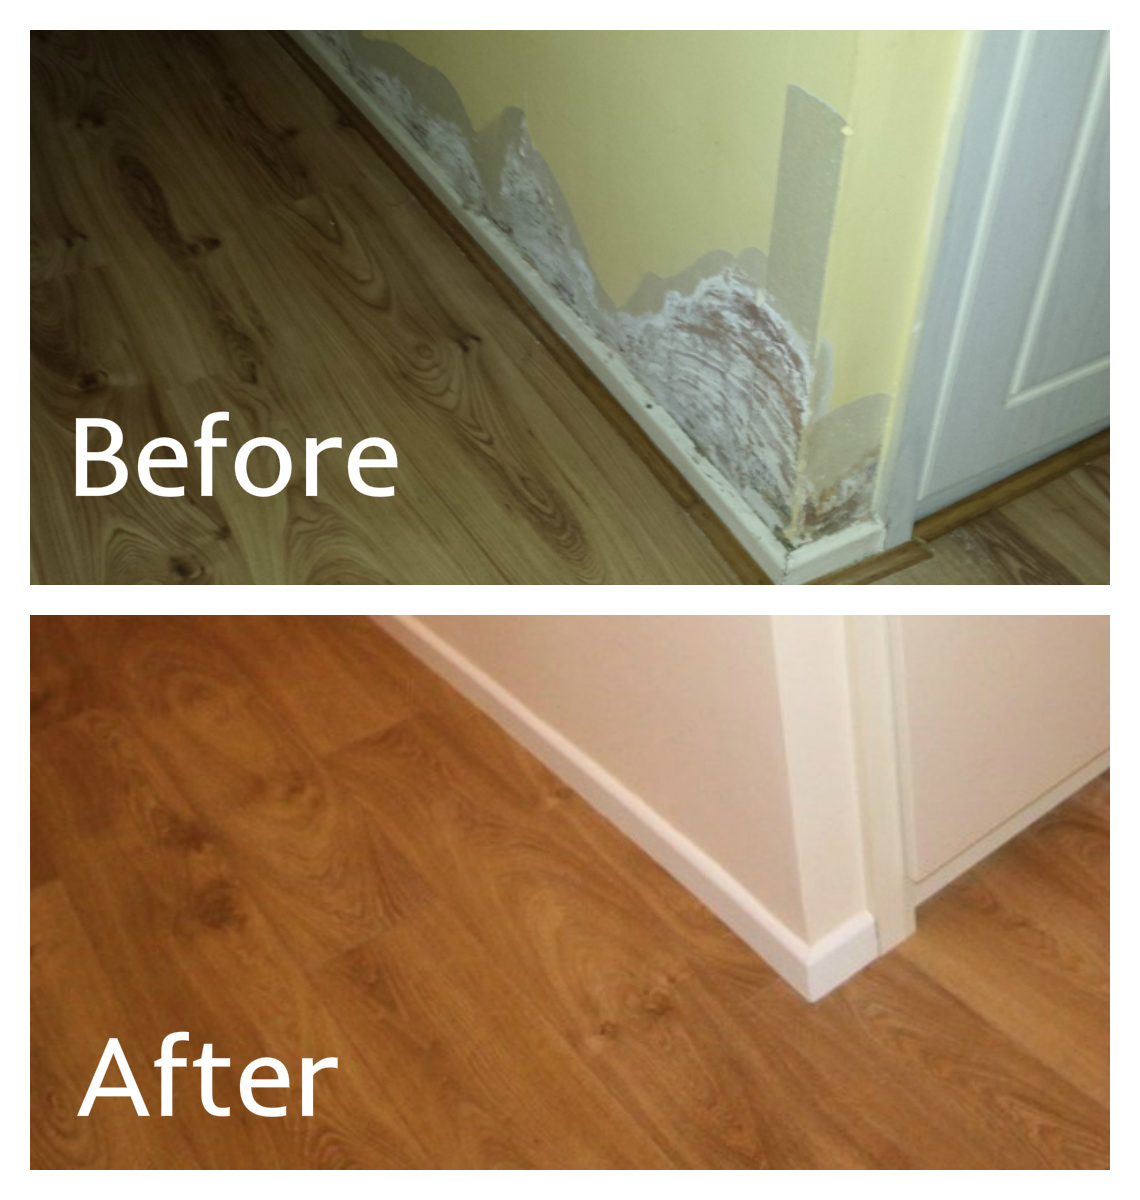 Claiming For A Water Damage Repair To Your Home Book Your